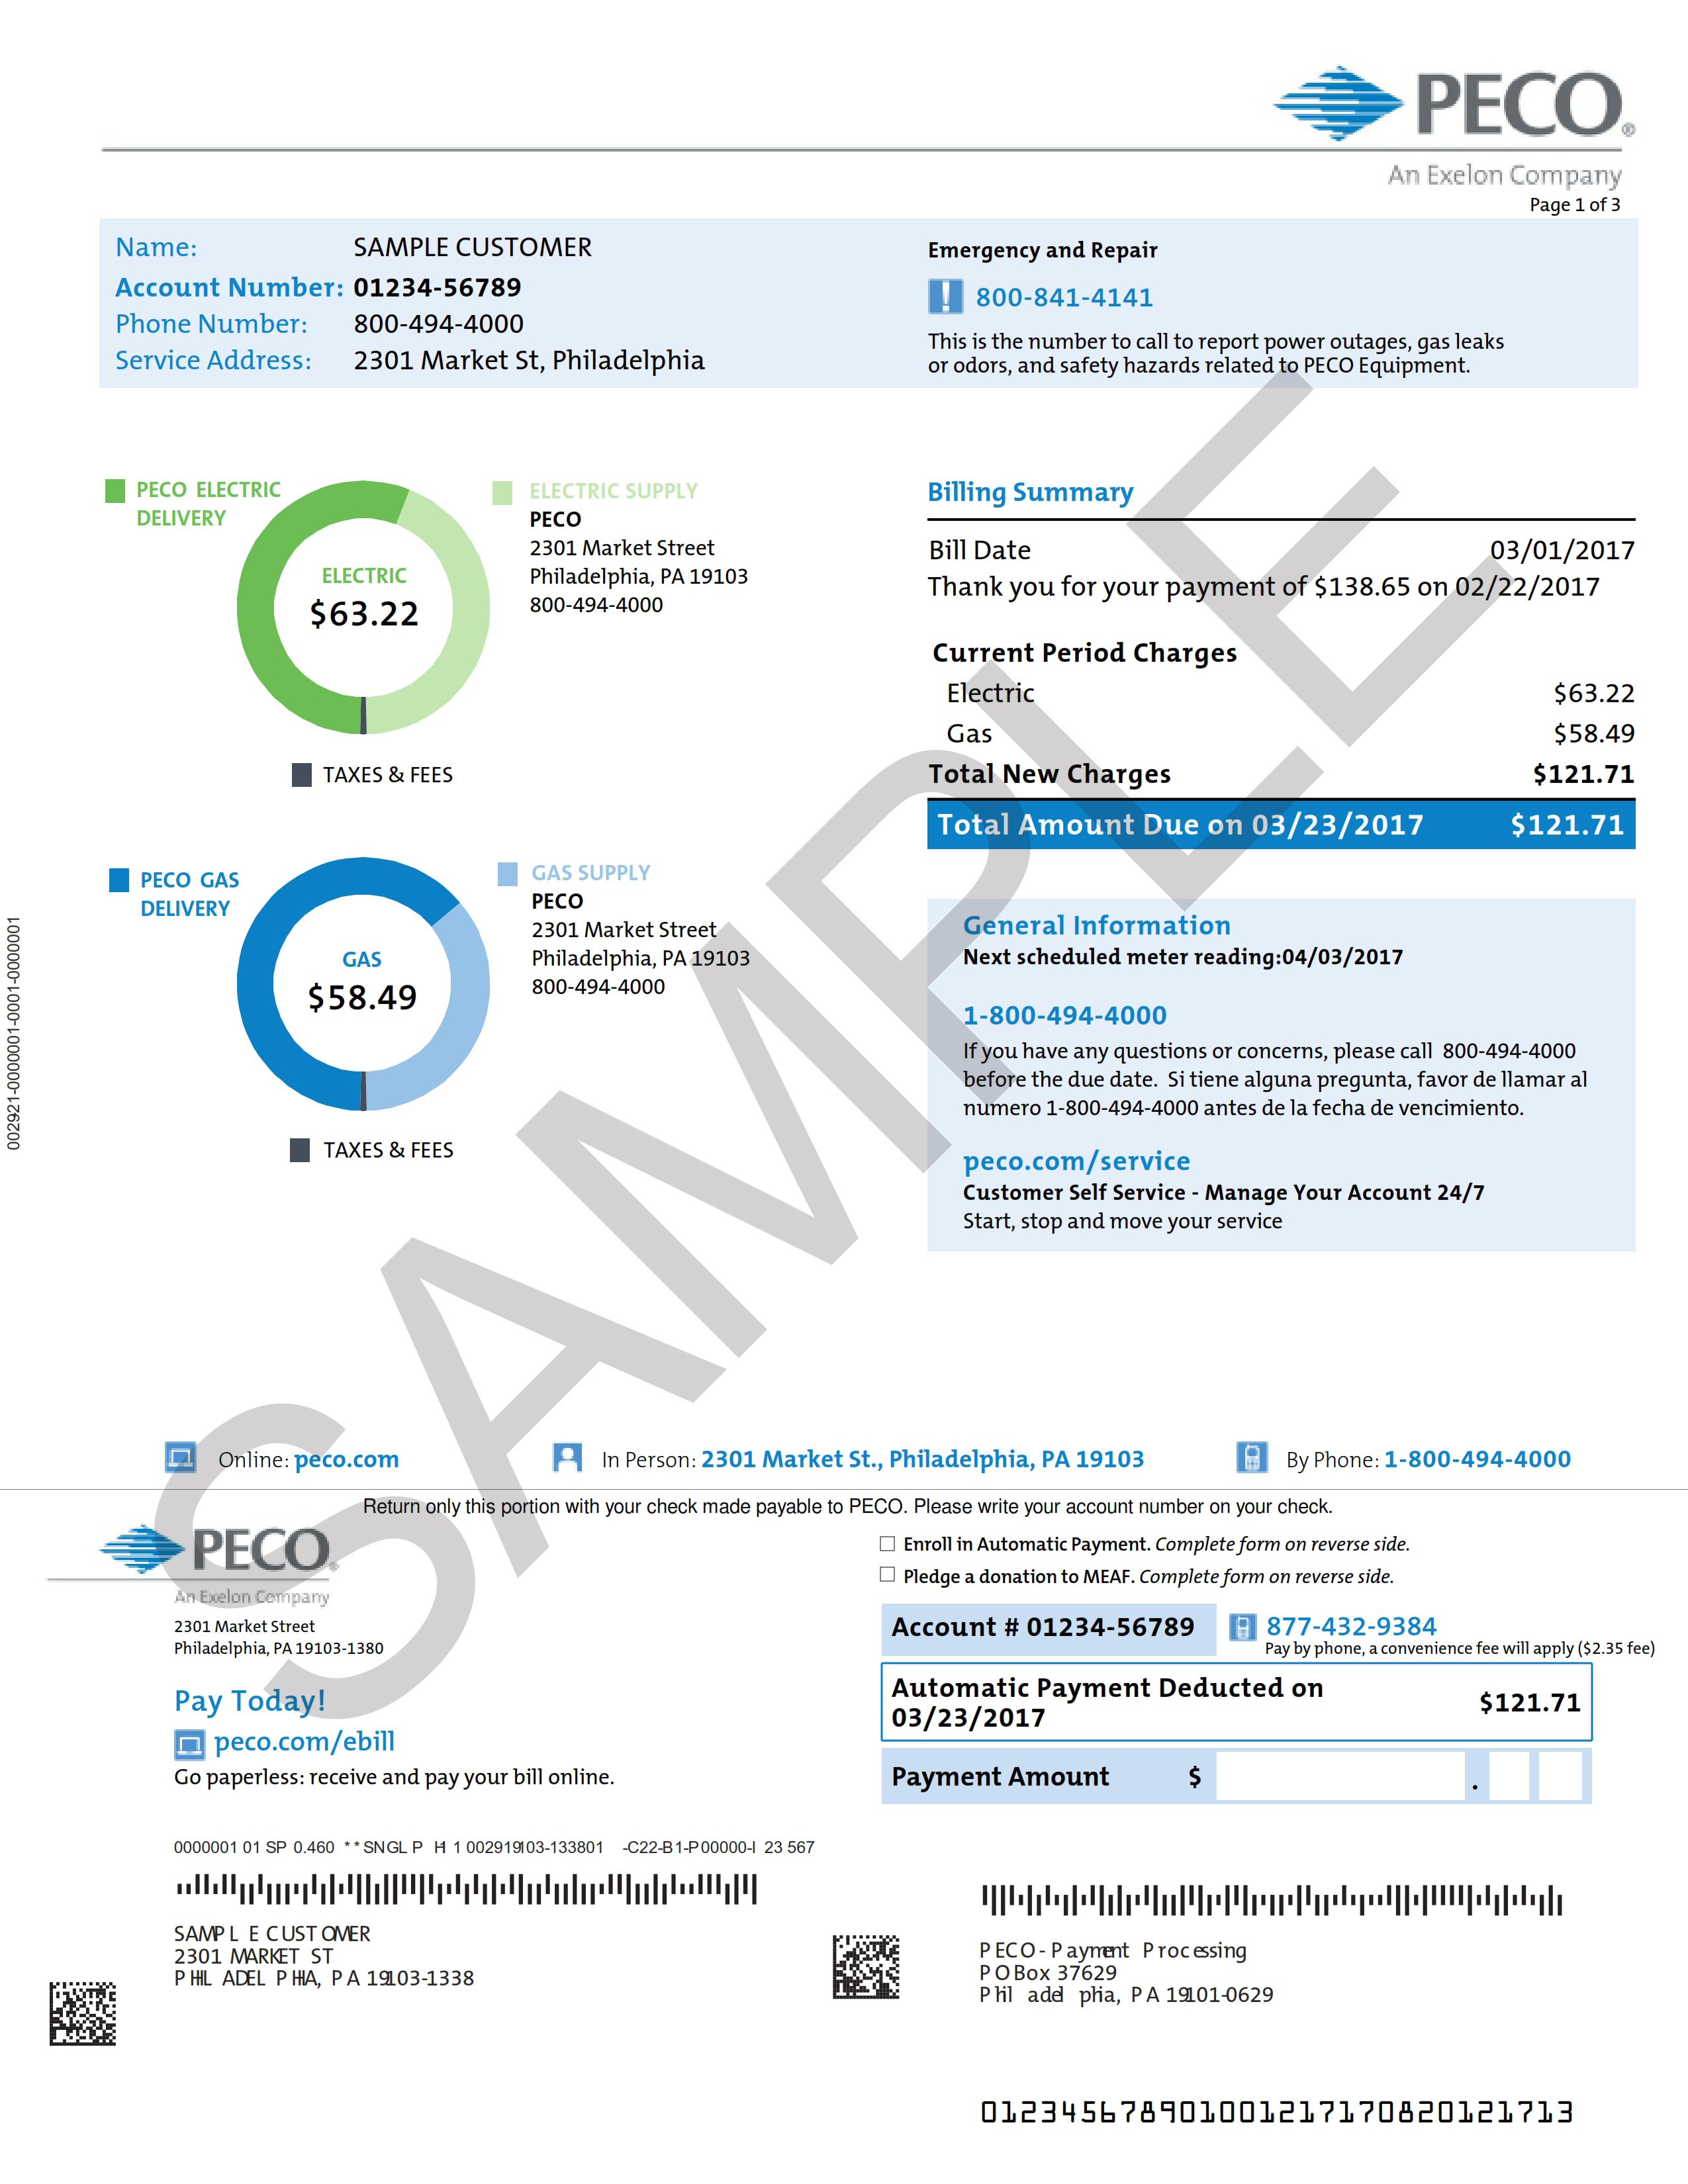 Sample Home Electric and Gas Bill  PECO  An Exelon Company